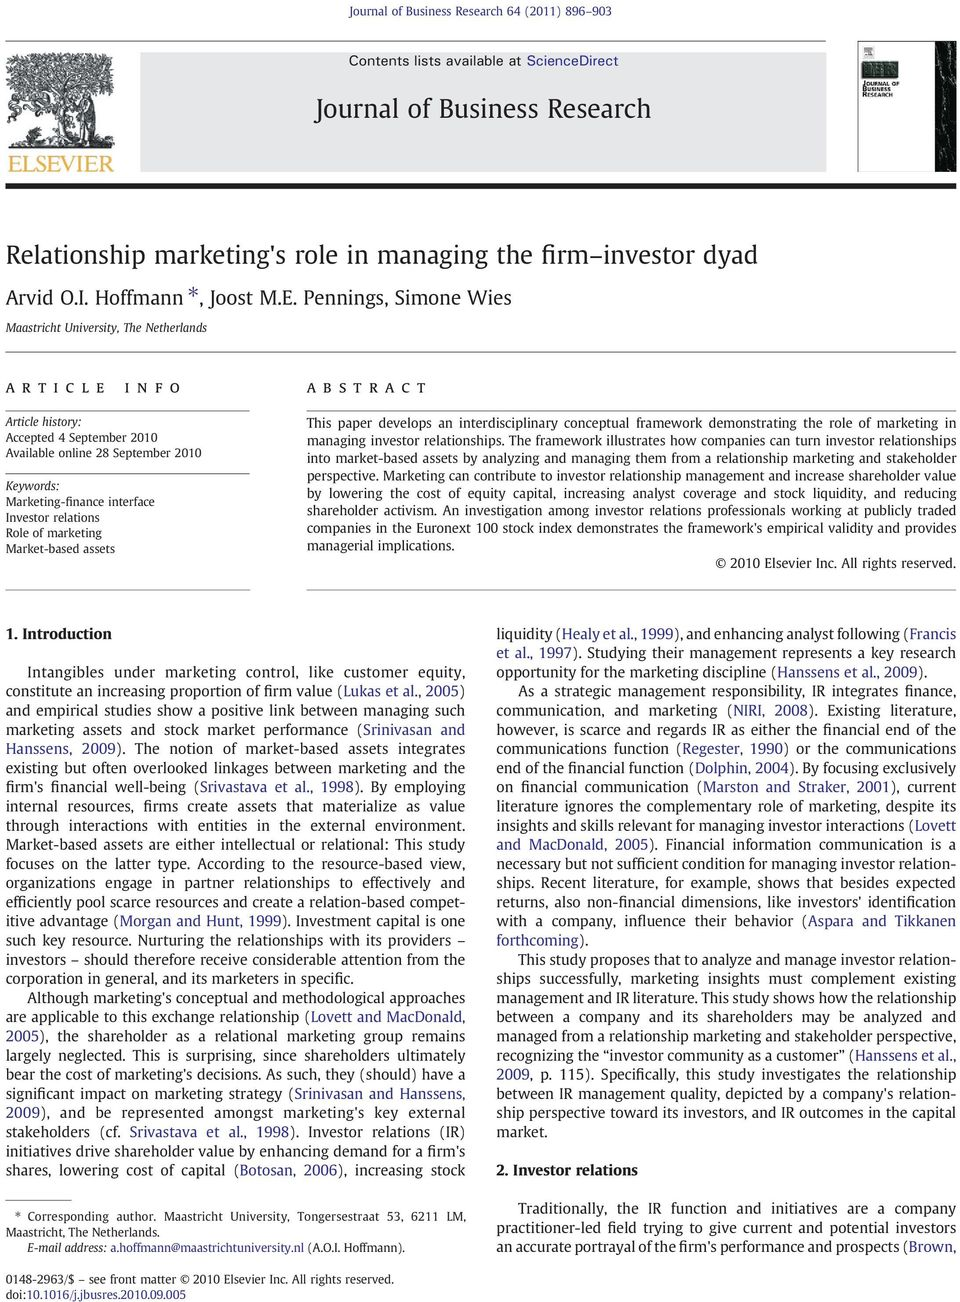 reltions Role of mrketing Mrket-bsed ssets This pper develops n interdisciplinry conceptul frmework demonstrting the role of mrketing in mnging investor reltionships.